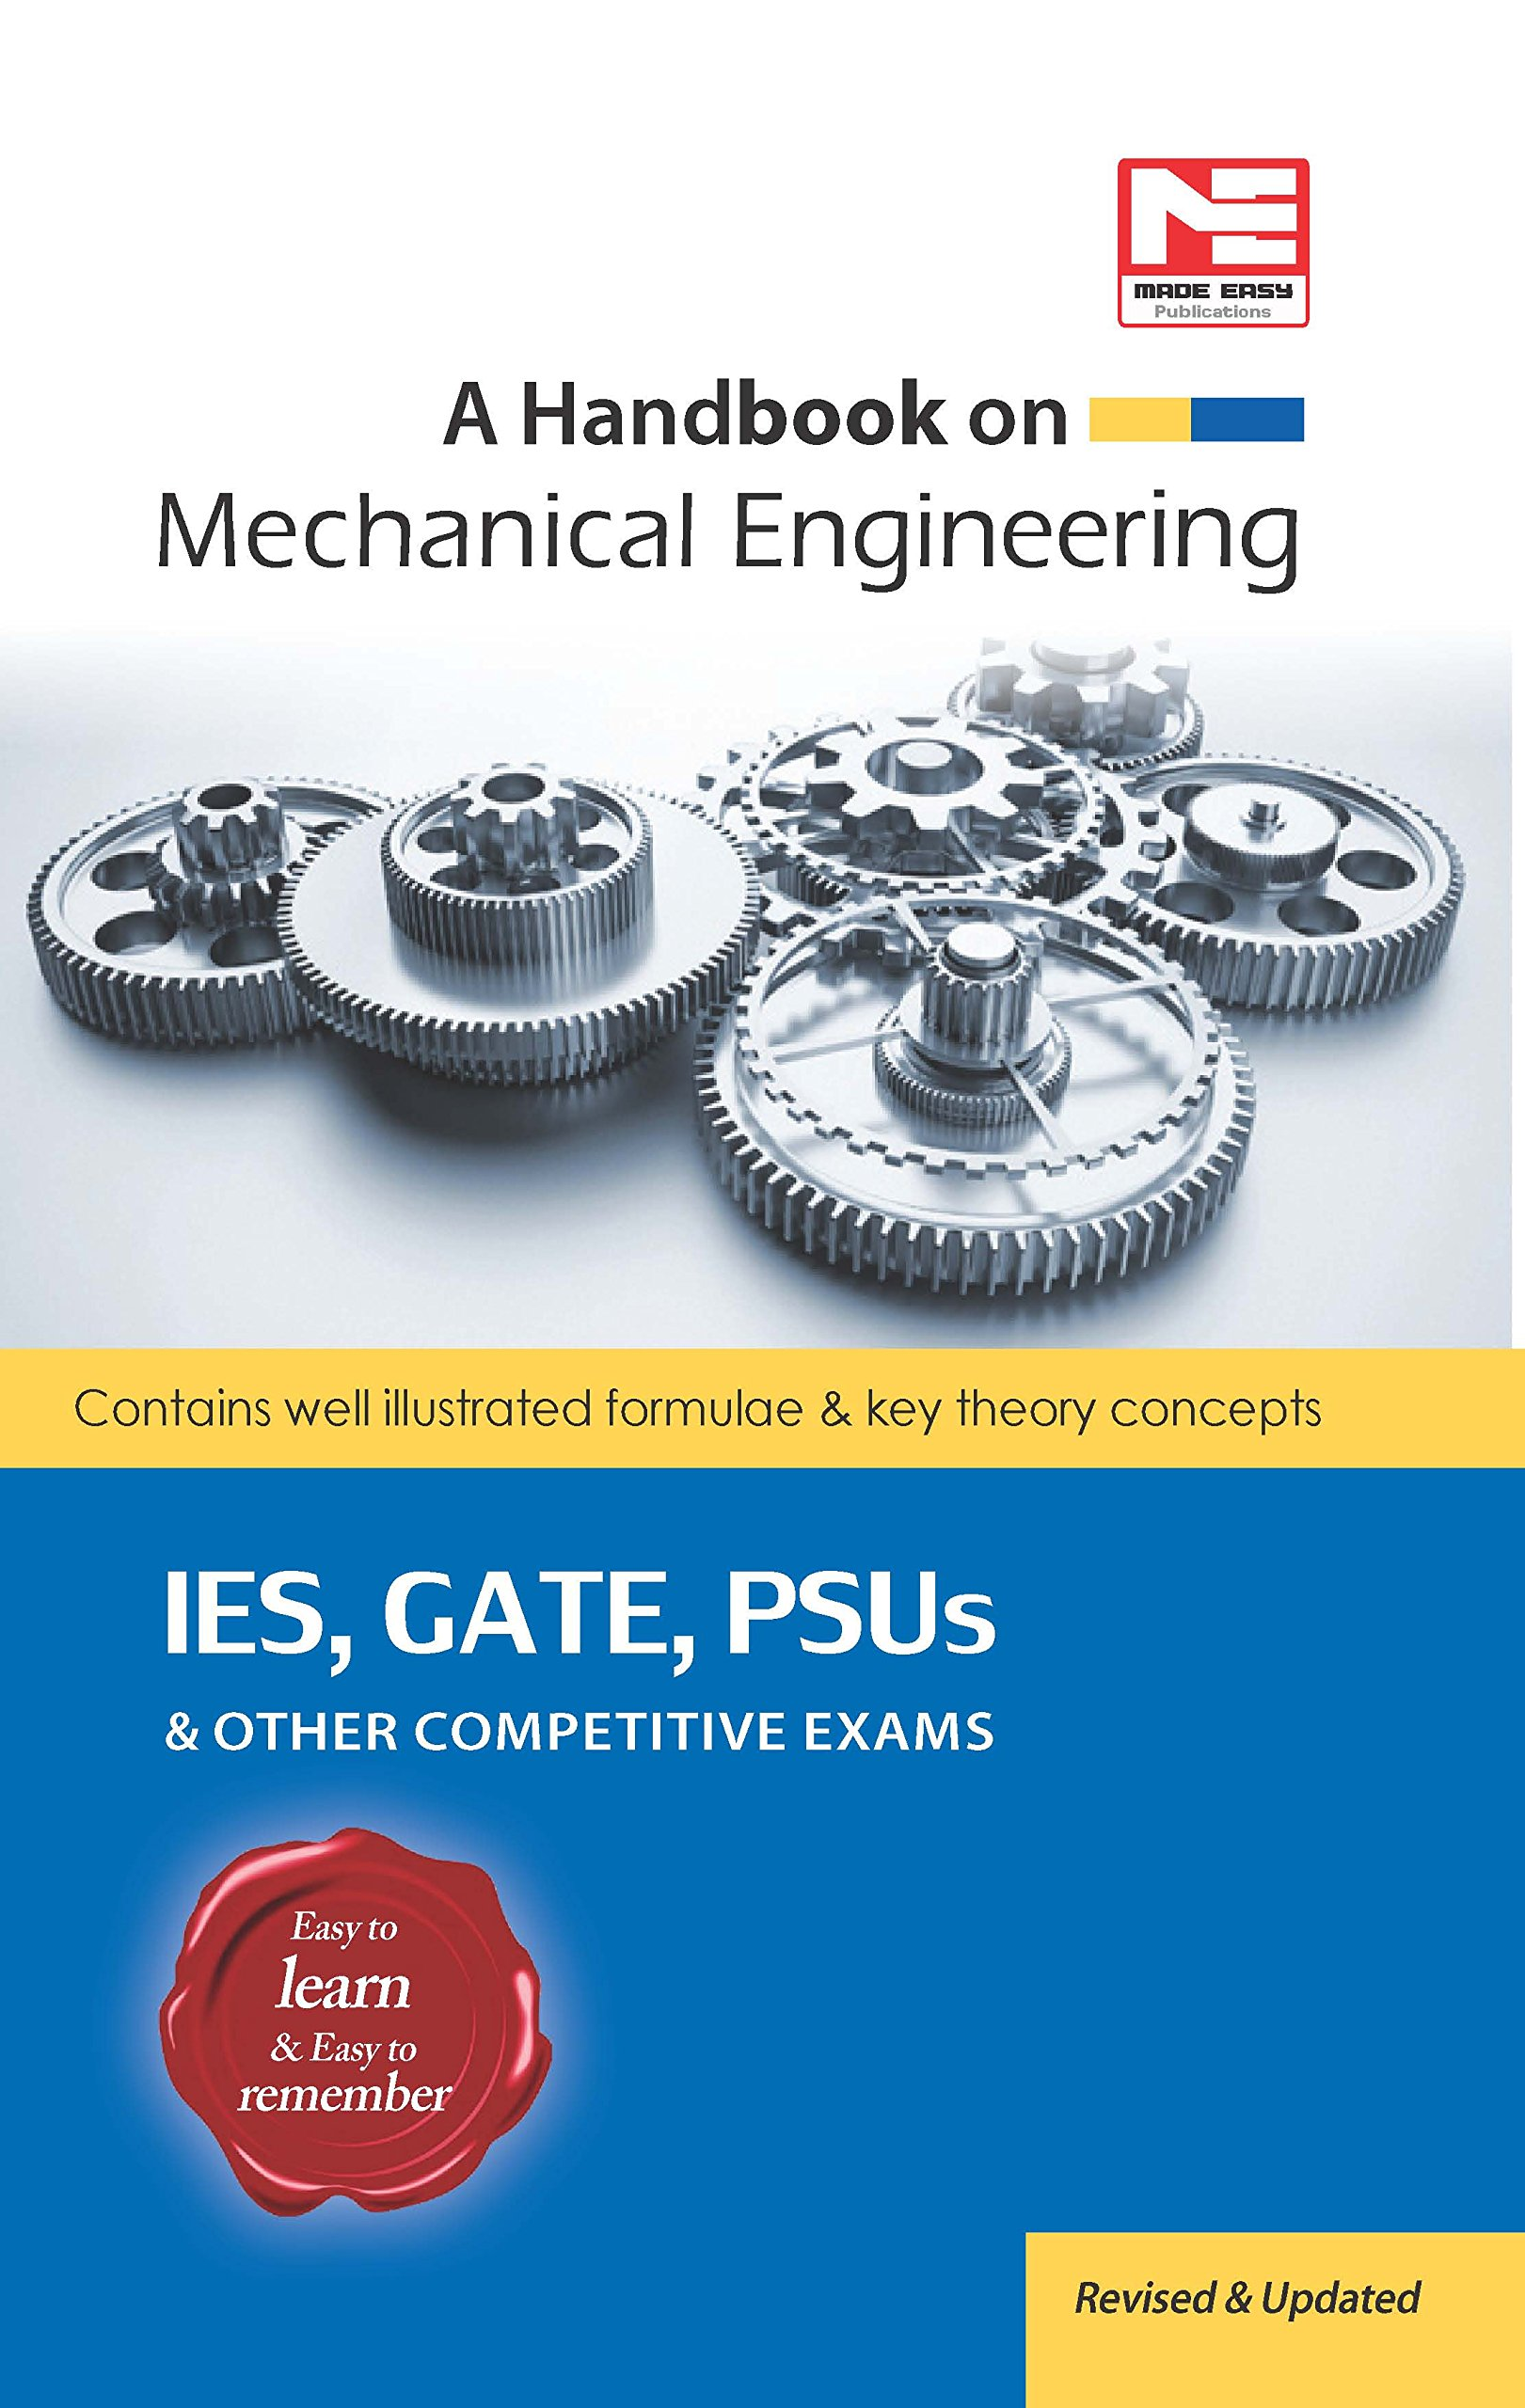 A Handbook on Mechanical Engineering - Contains well